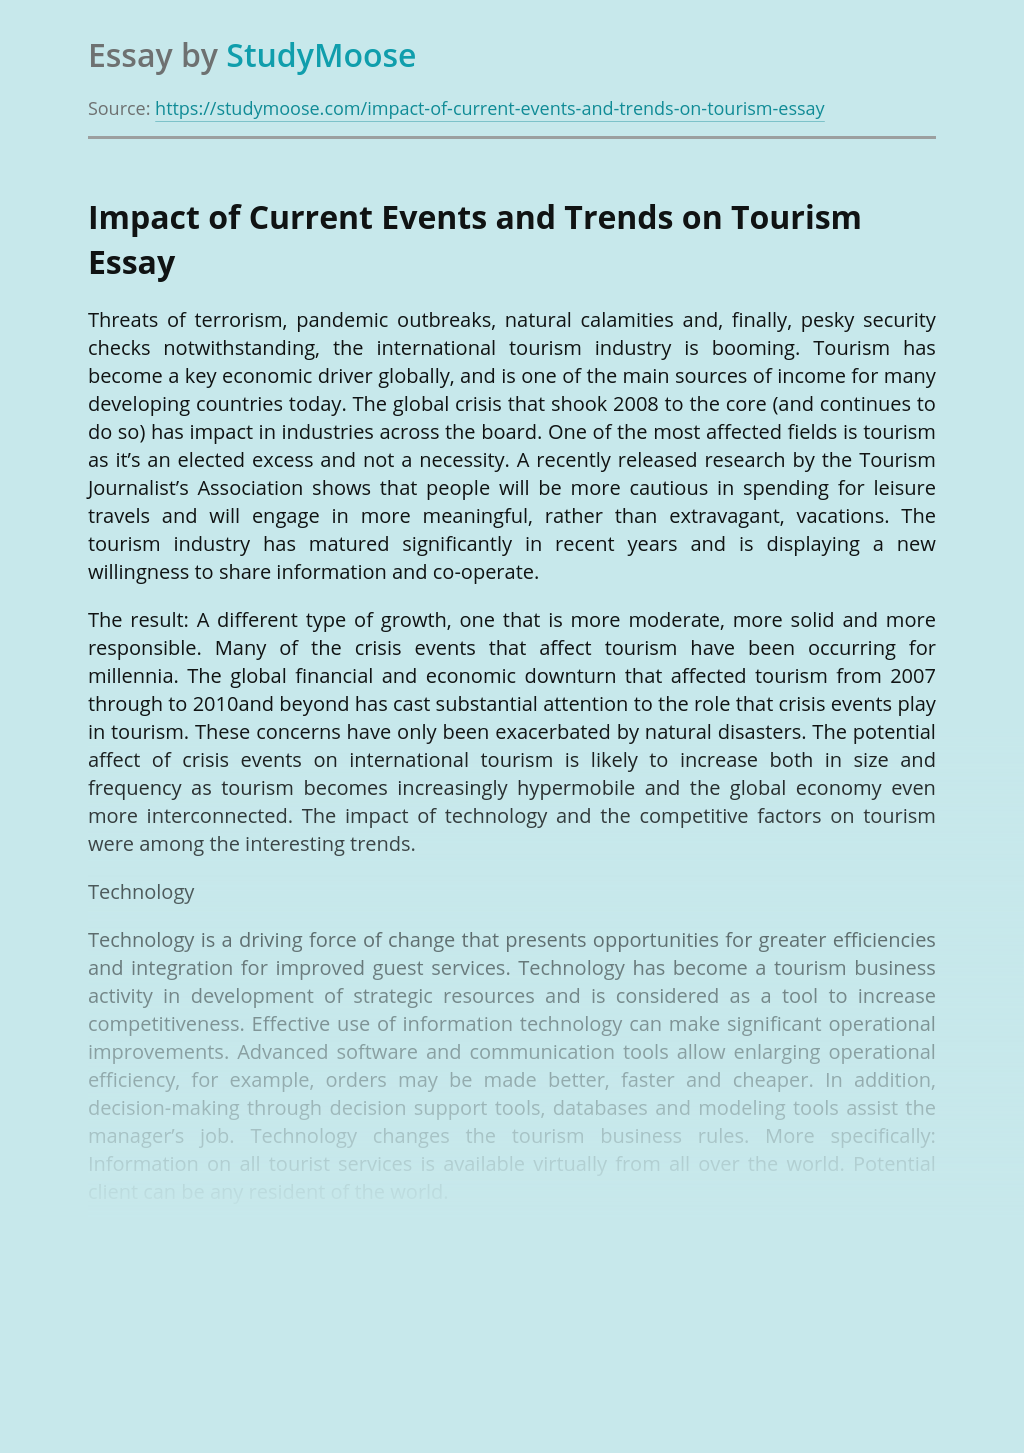 Impact of Current Events and Trends on Tourism